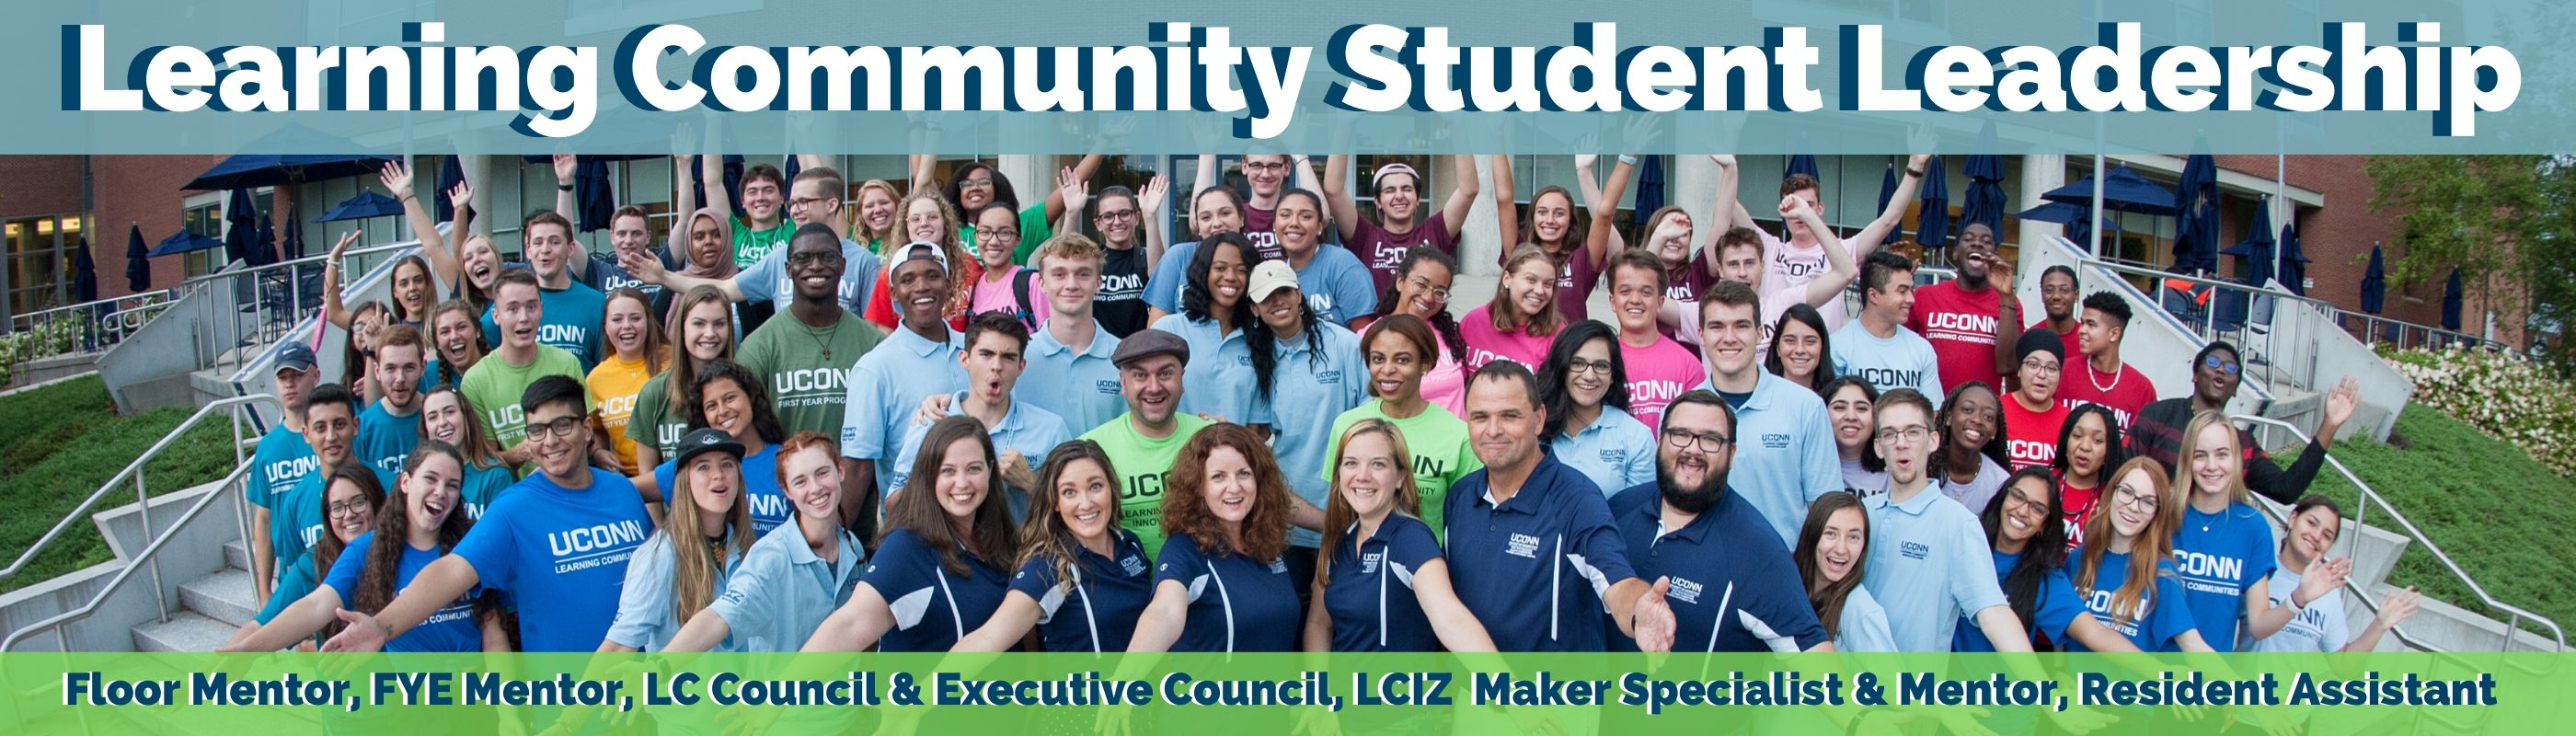 LC Leadership Web Banner